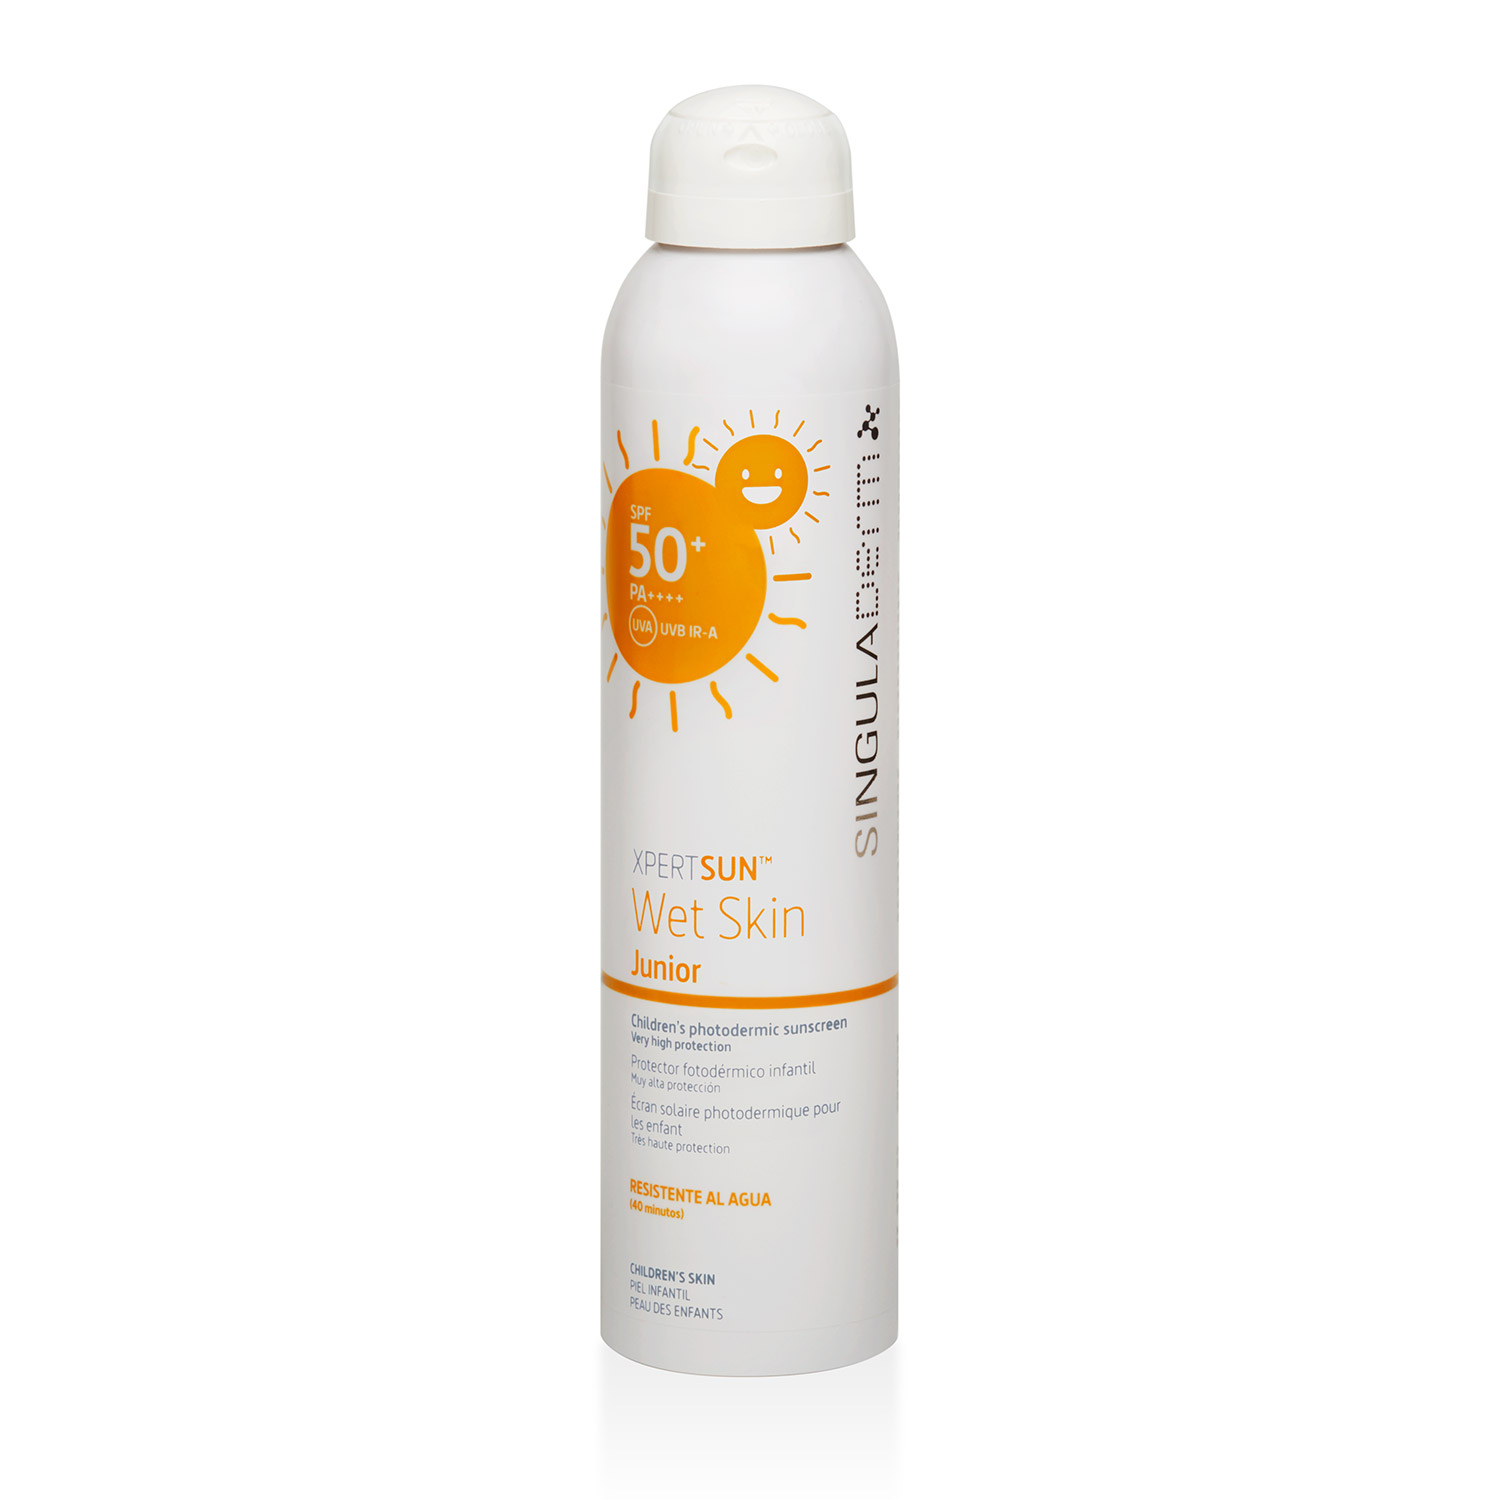 XPERT Sun™ Wet Skin Junior SPF 50+